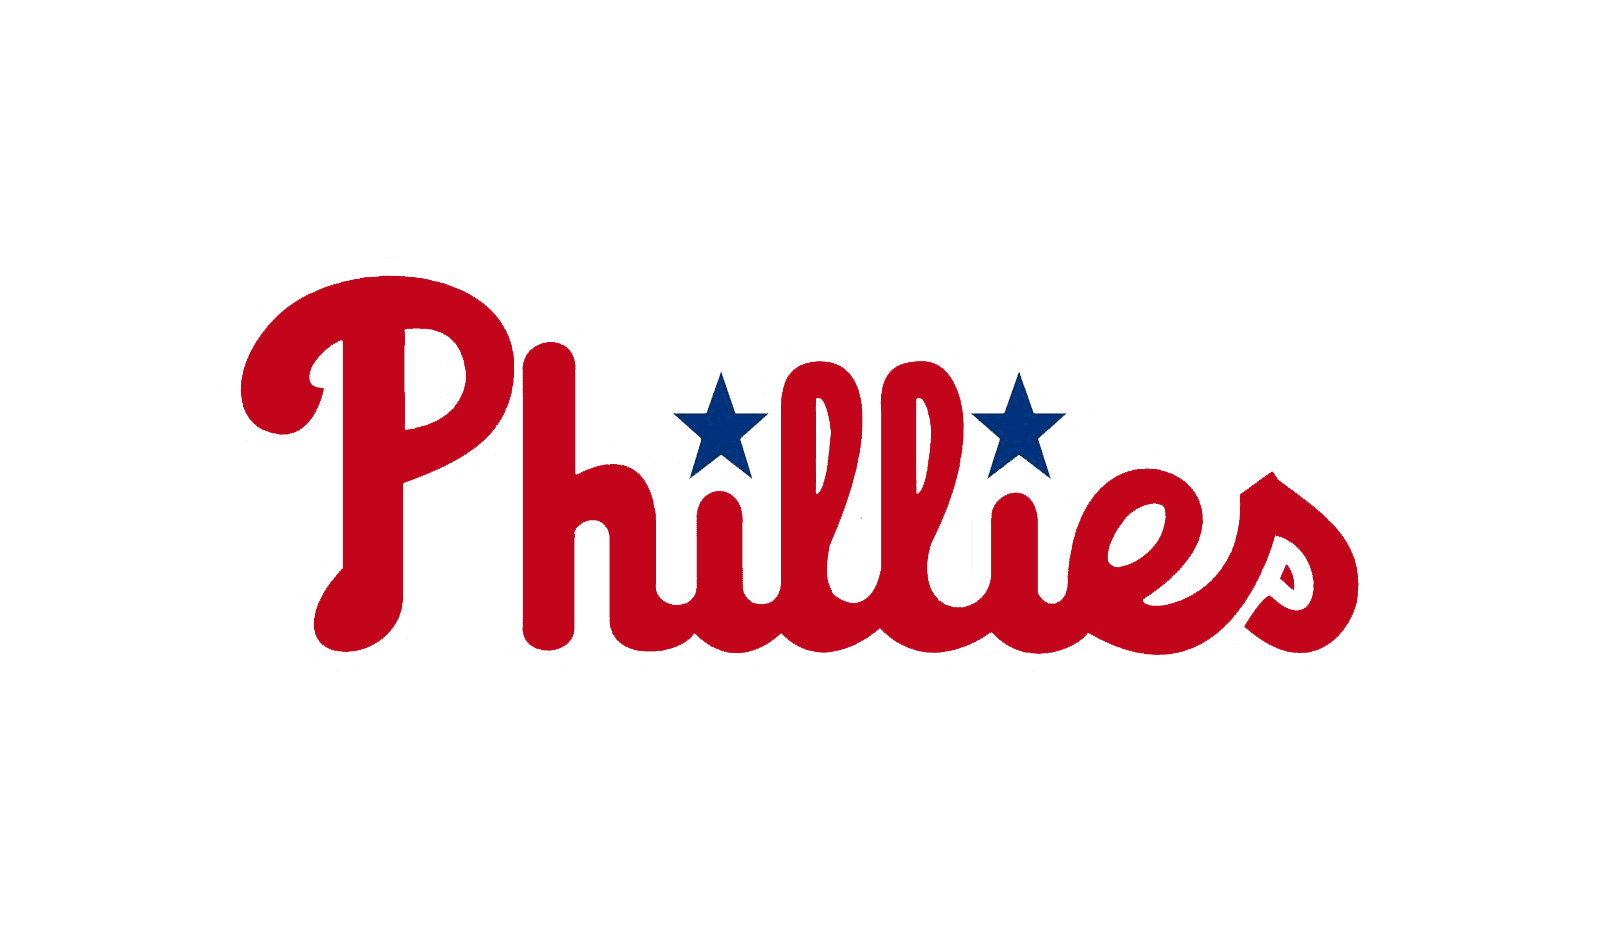 the phillies will not make the playoffs u2022 the game haus rh thegamehaus com  phillies blunt logo font